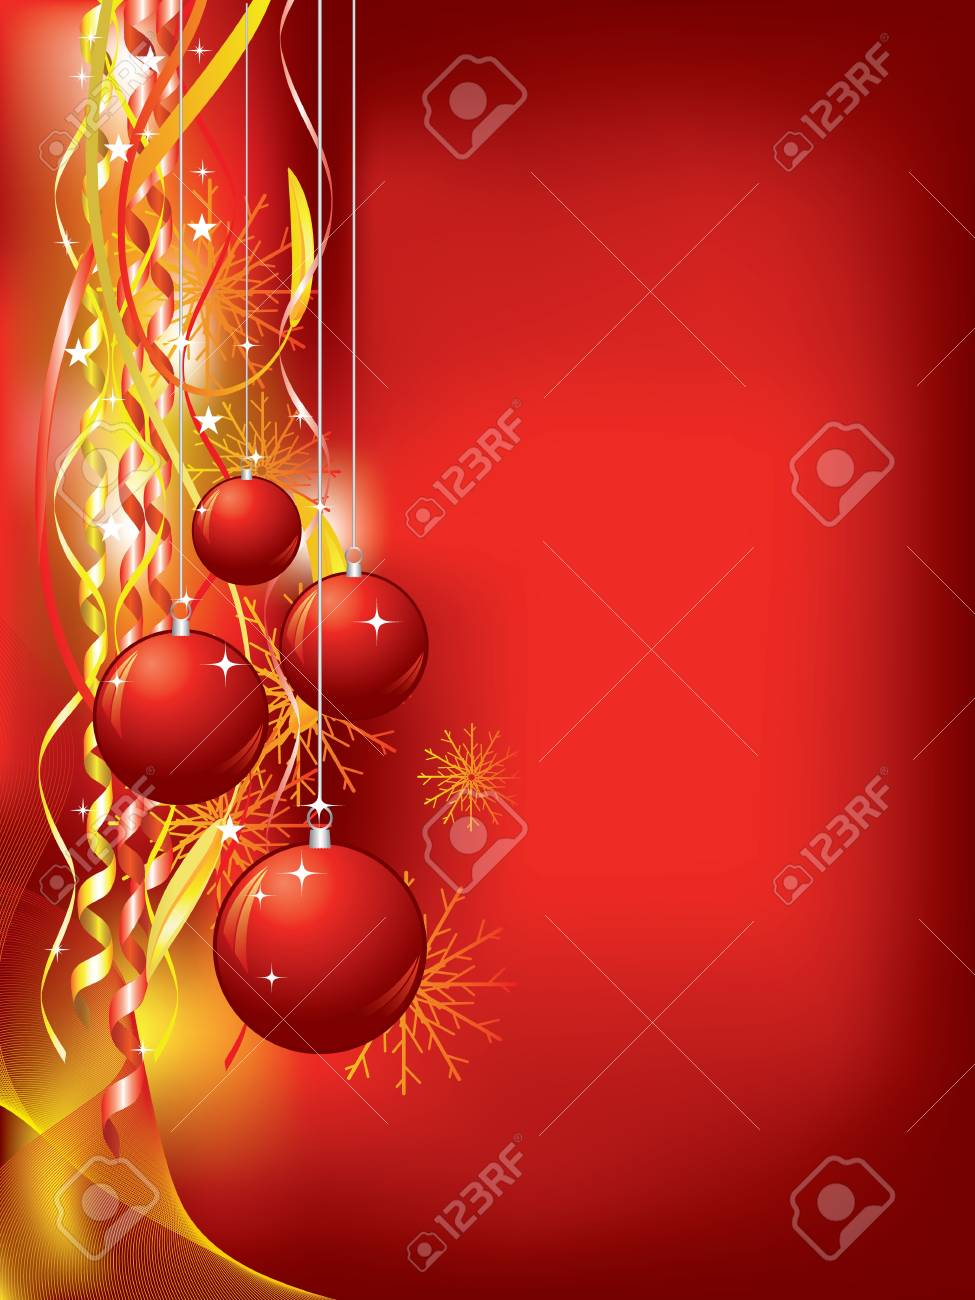 Christmas background with confetti and baubles Stock Vector - 8381825